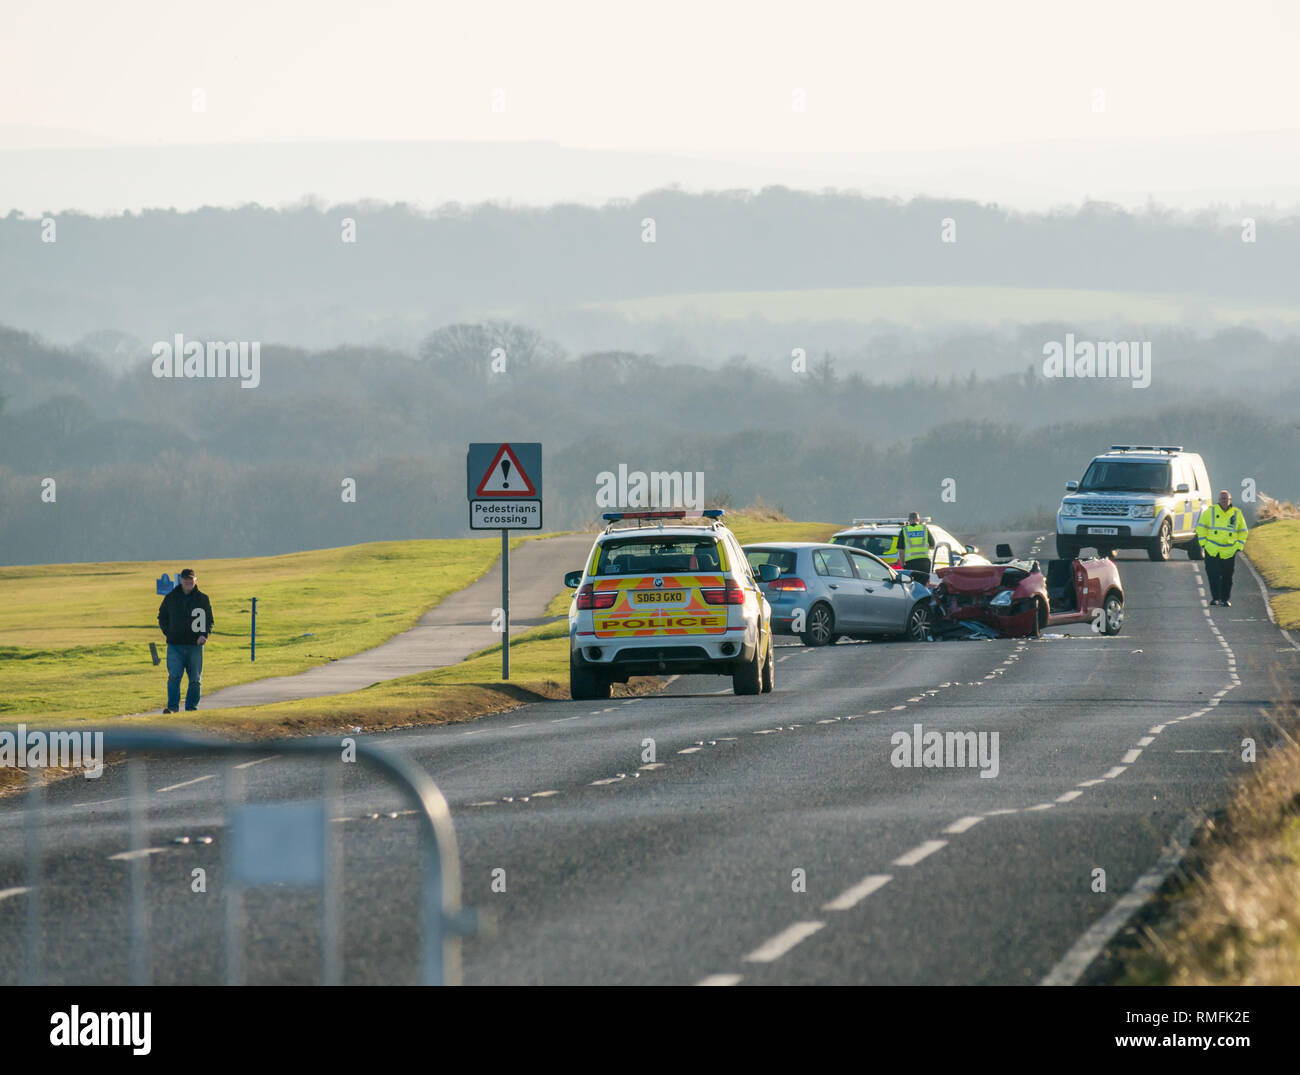 Gullane, East Lothian, Scotland, United Kingdom, 15th February 2019. Two cars involved in a collision crash on the A198 coast road between Aberlady and Gullane on the straight section outside Gullane golf course on West Links Road. The crash happened around 1.00pm and the was closed for hours. Three pensioners involved in the collision were taken to hospital - Stock Image